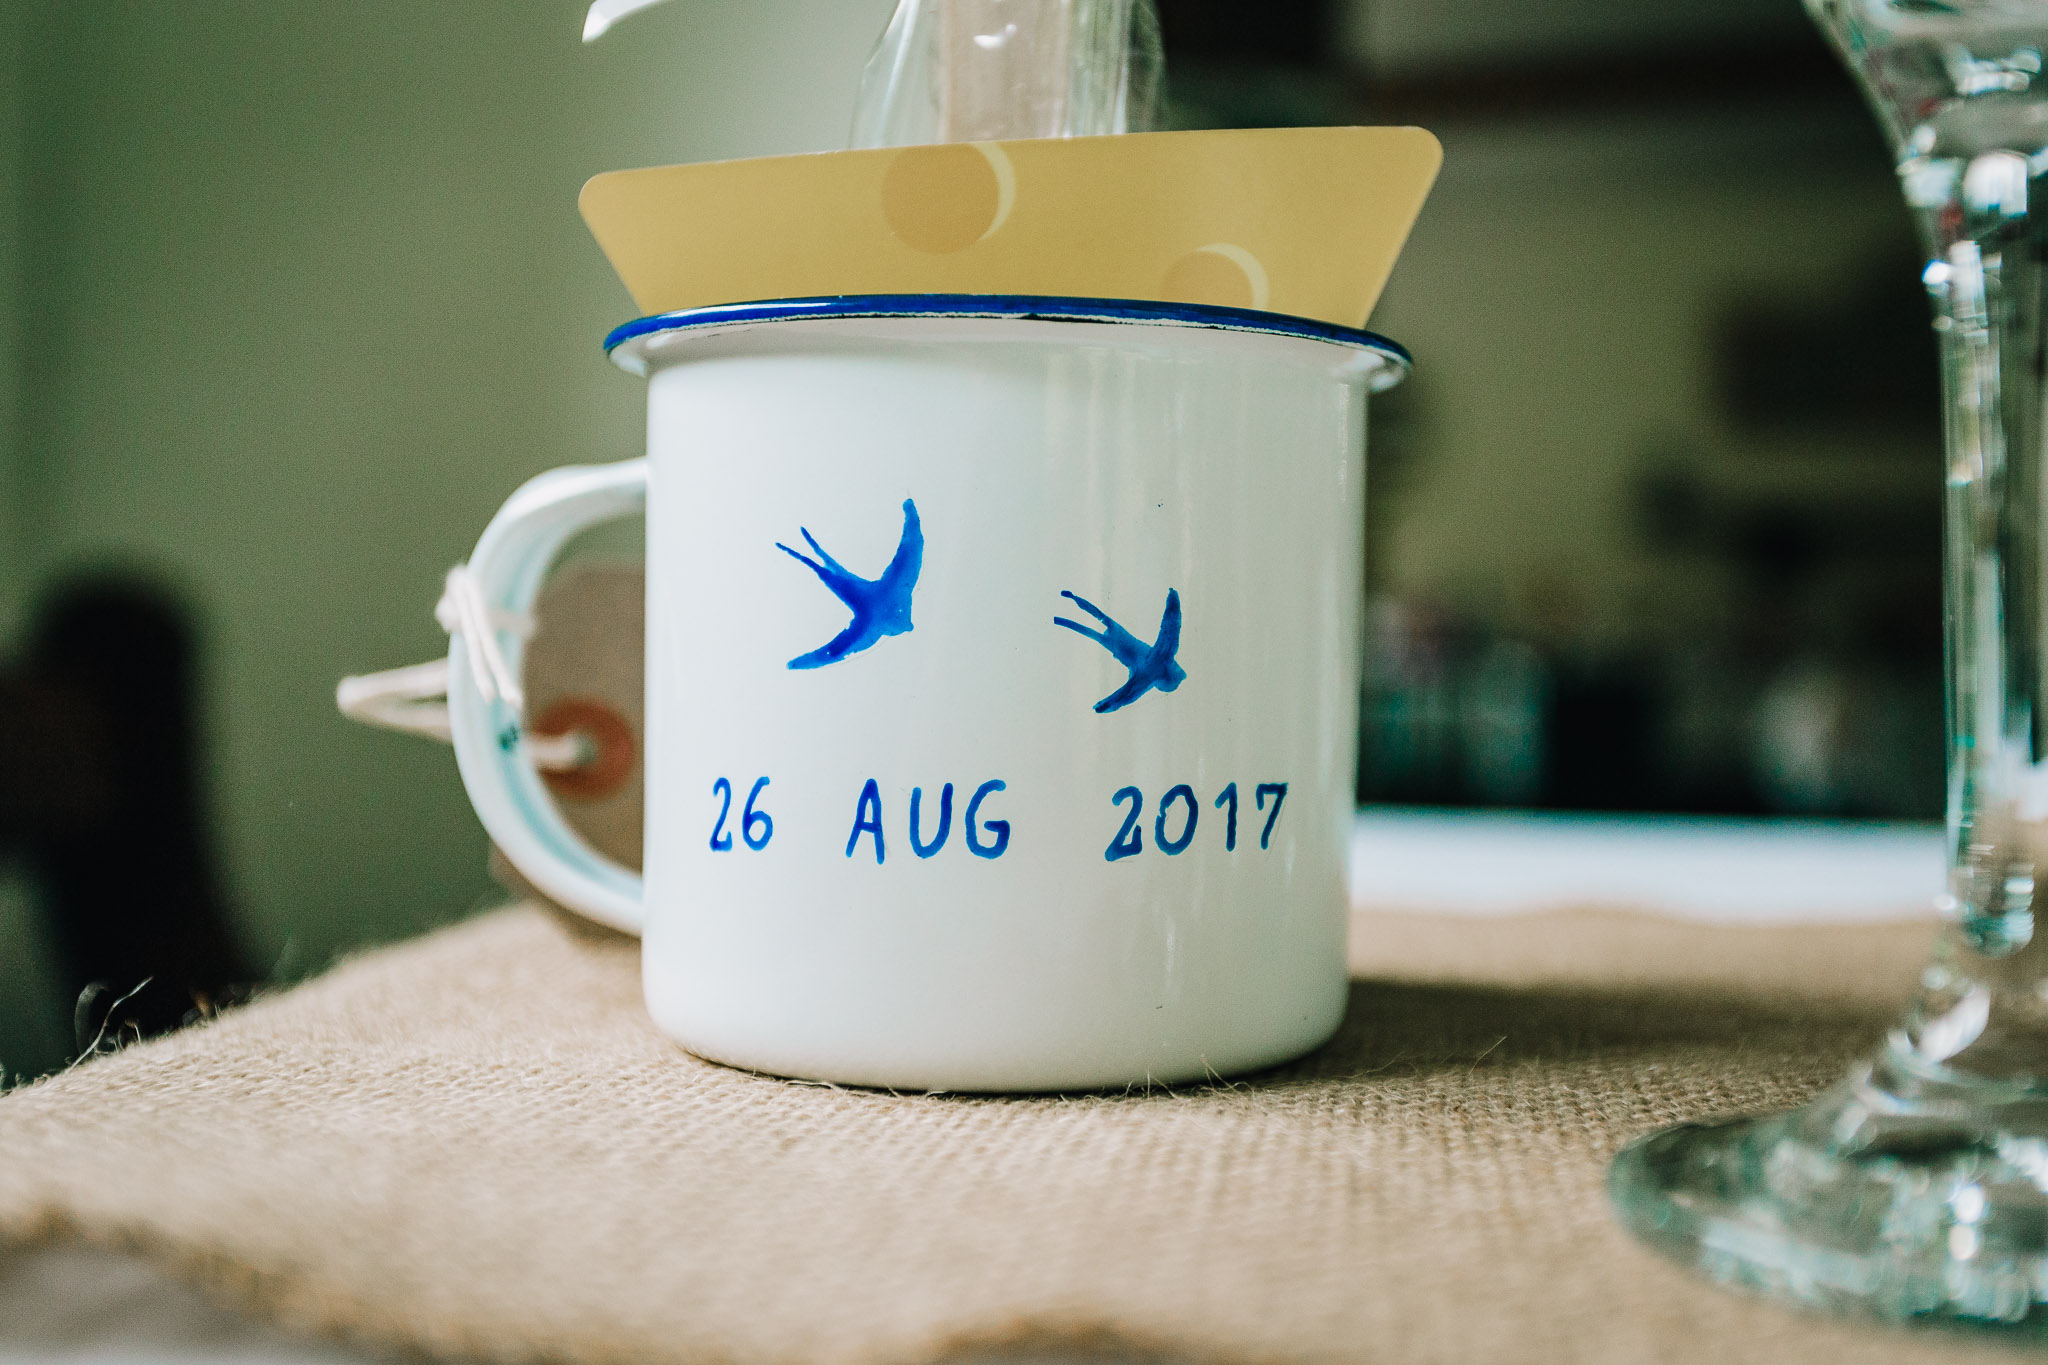 METAL CAMPING STYLE CUP WITH SWALLOWS AND WEDDING DATE